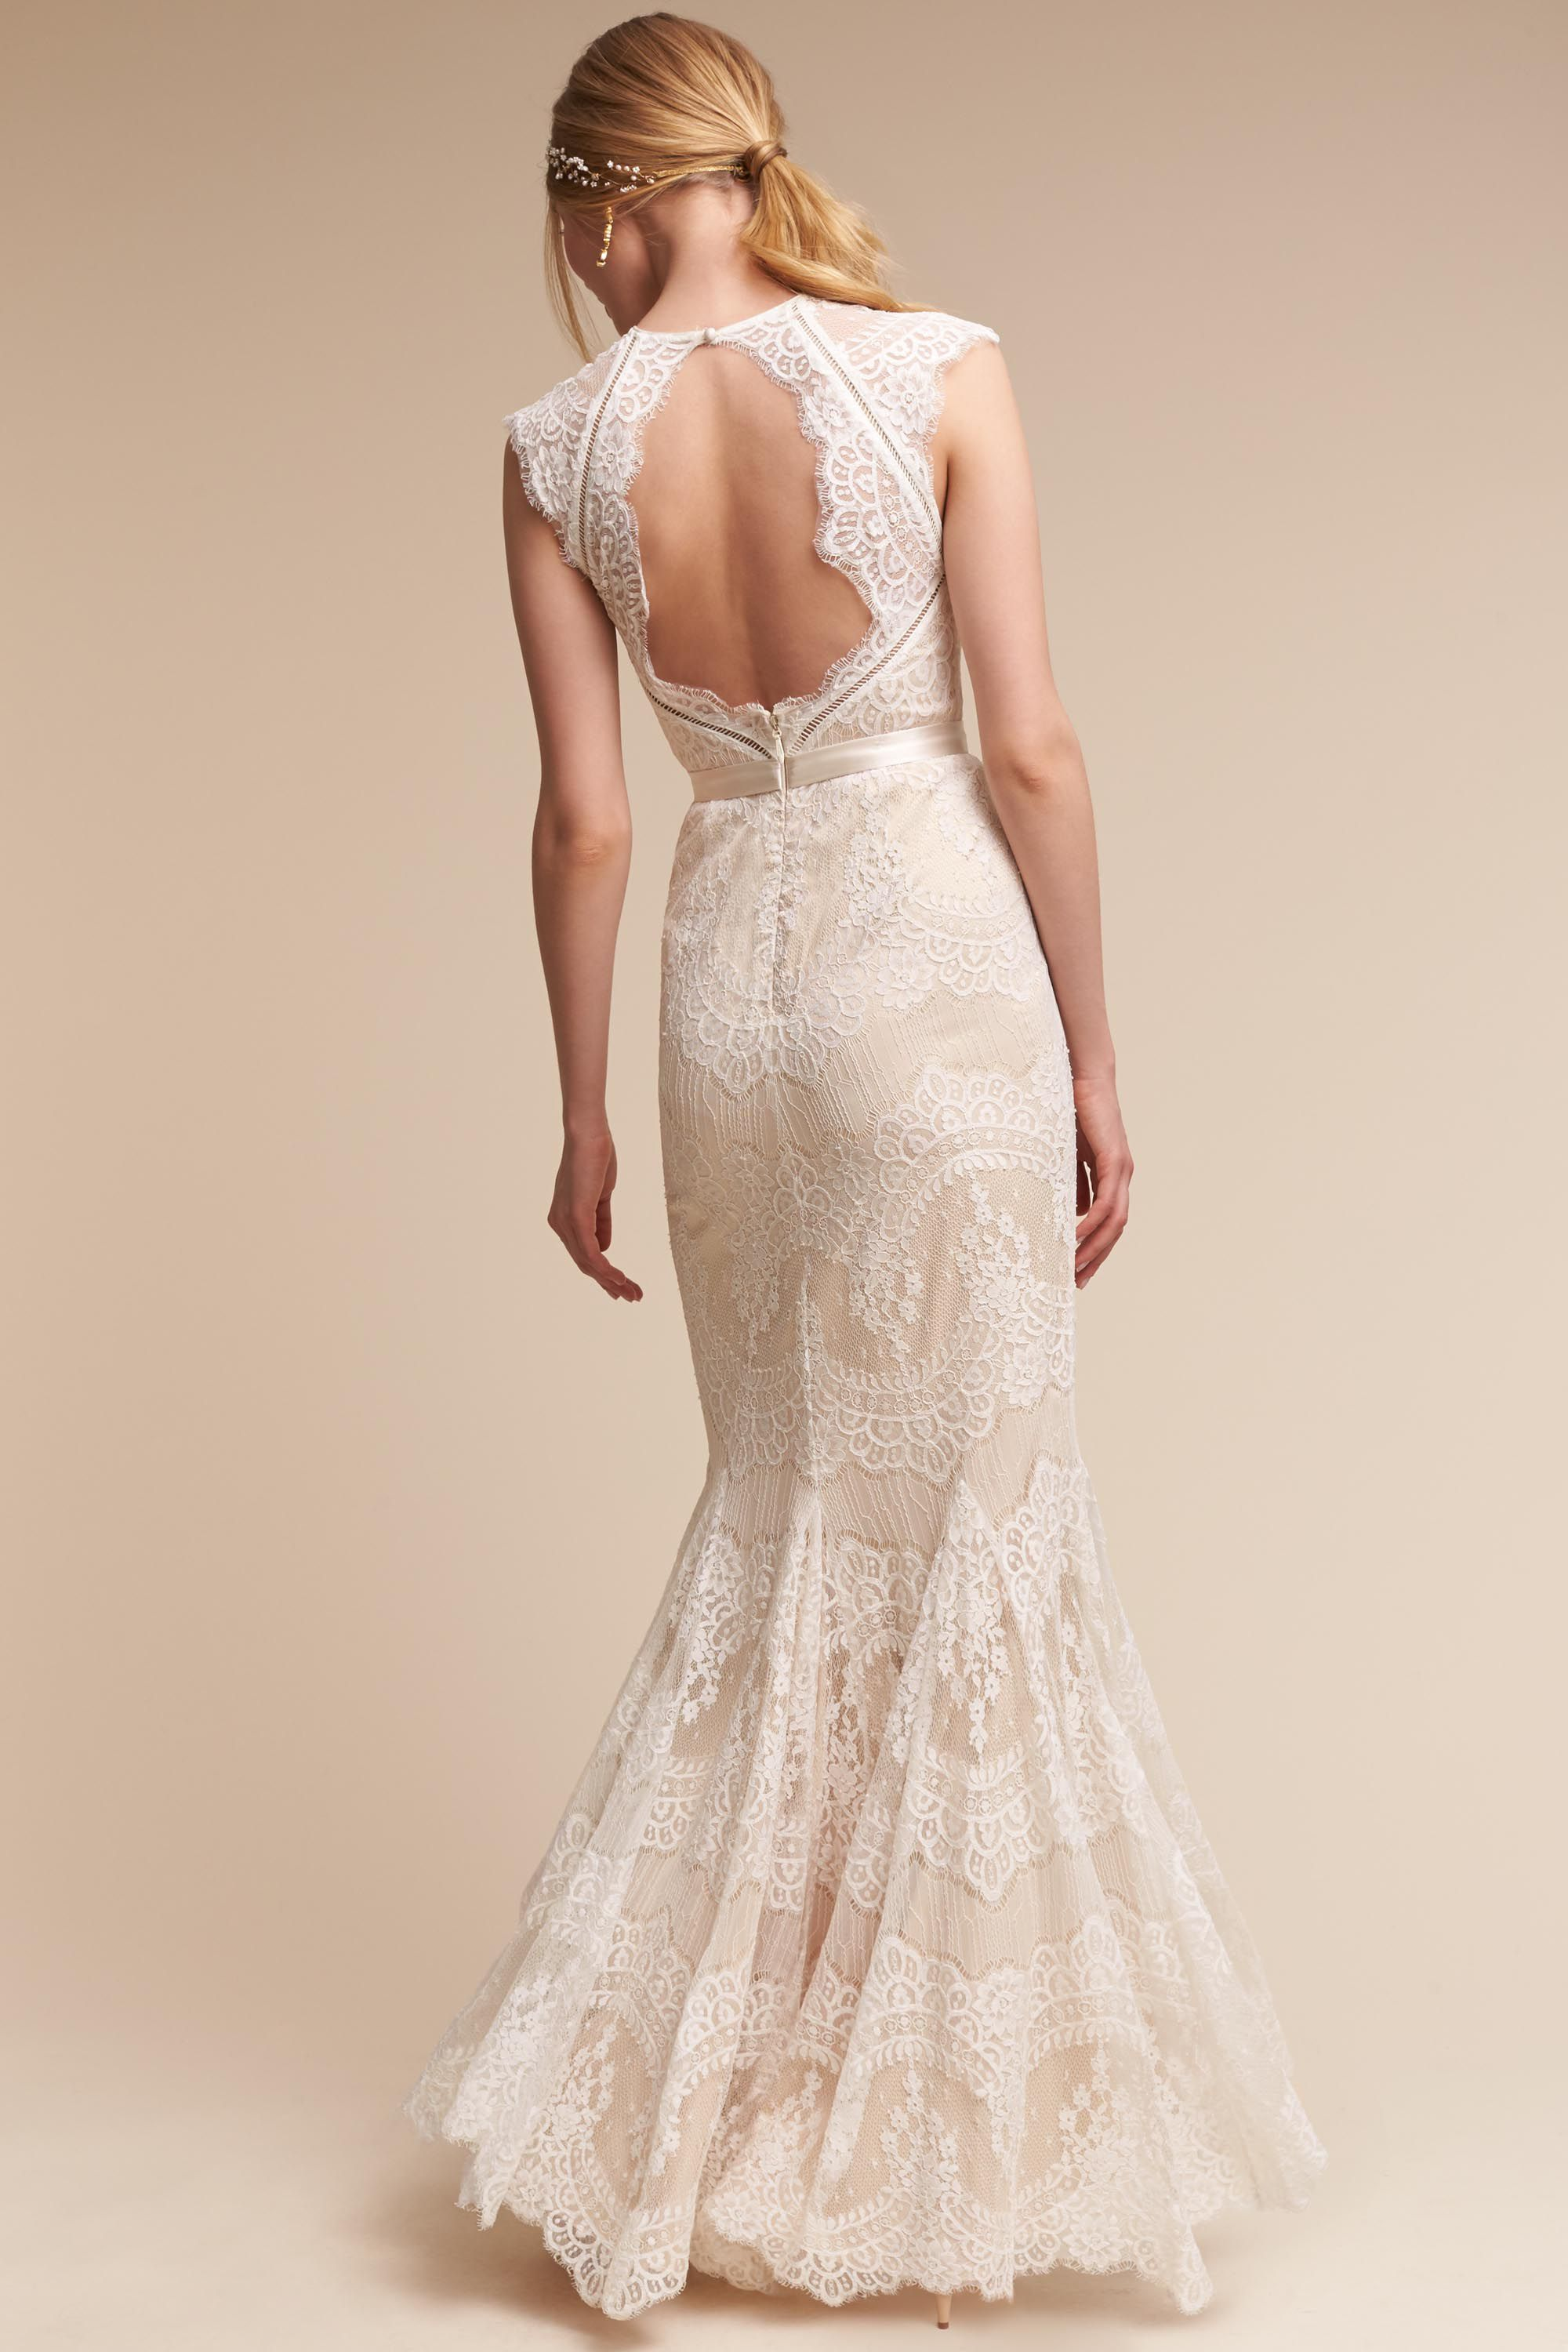 beach wedding dresses that will make you fall in love all over